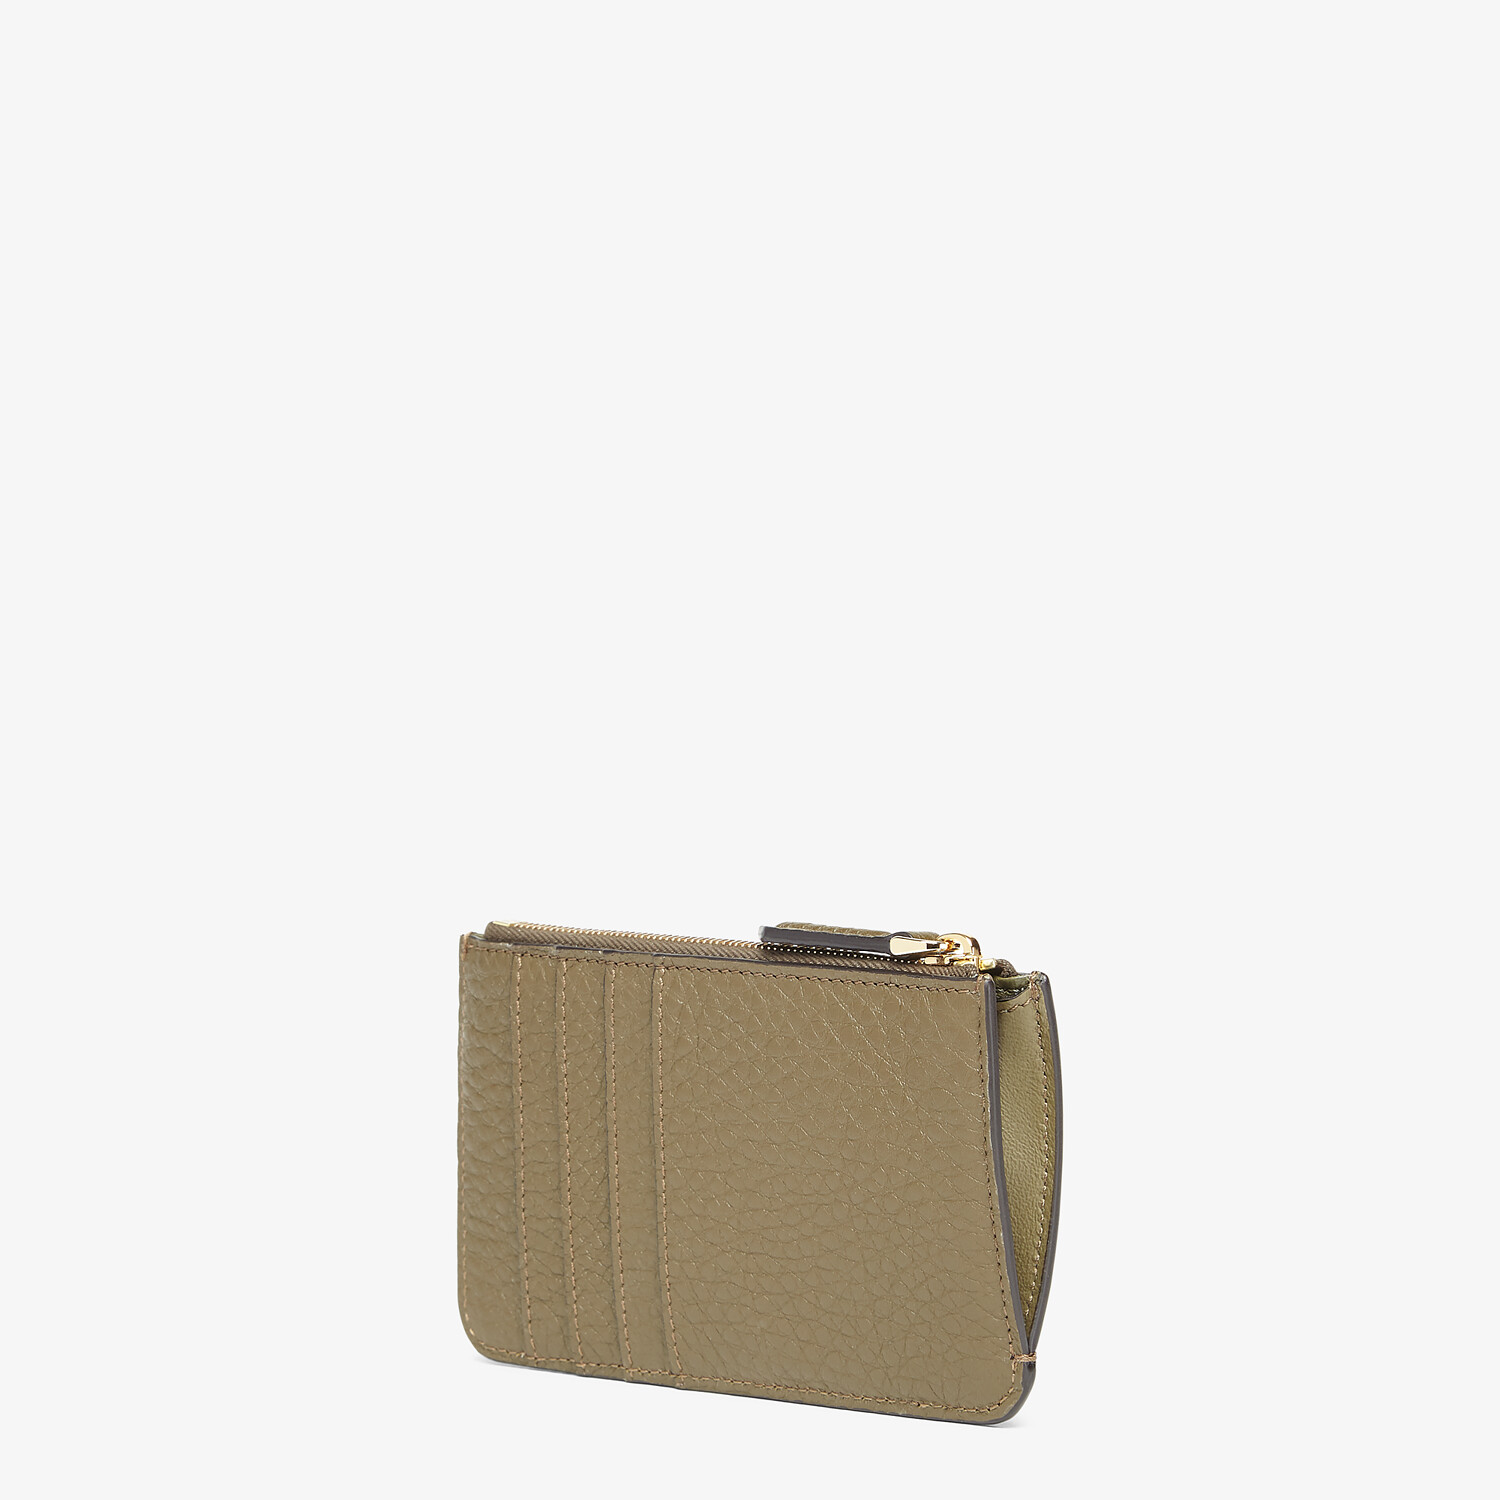 FENDI KEY CASE POUCH - Brown leather pouch - view 2 detail